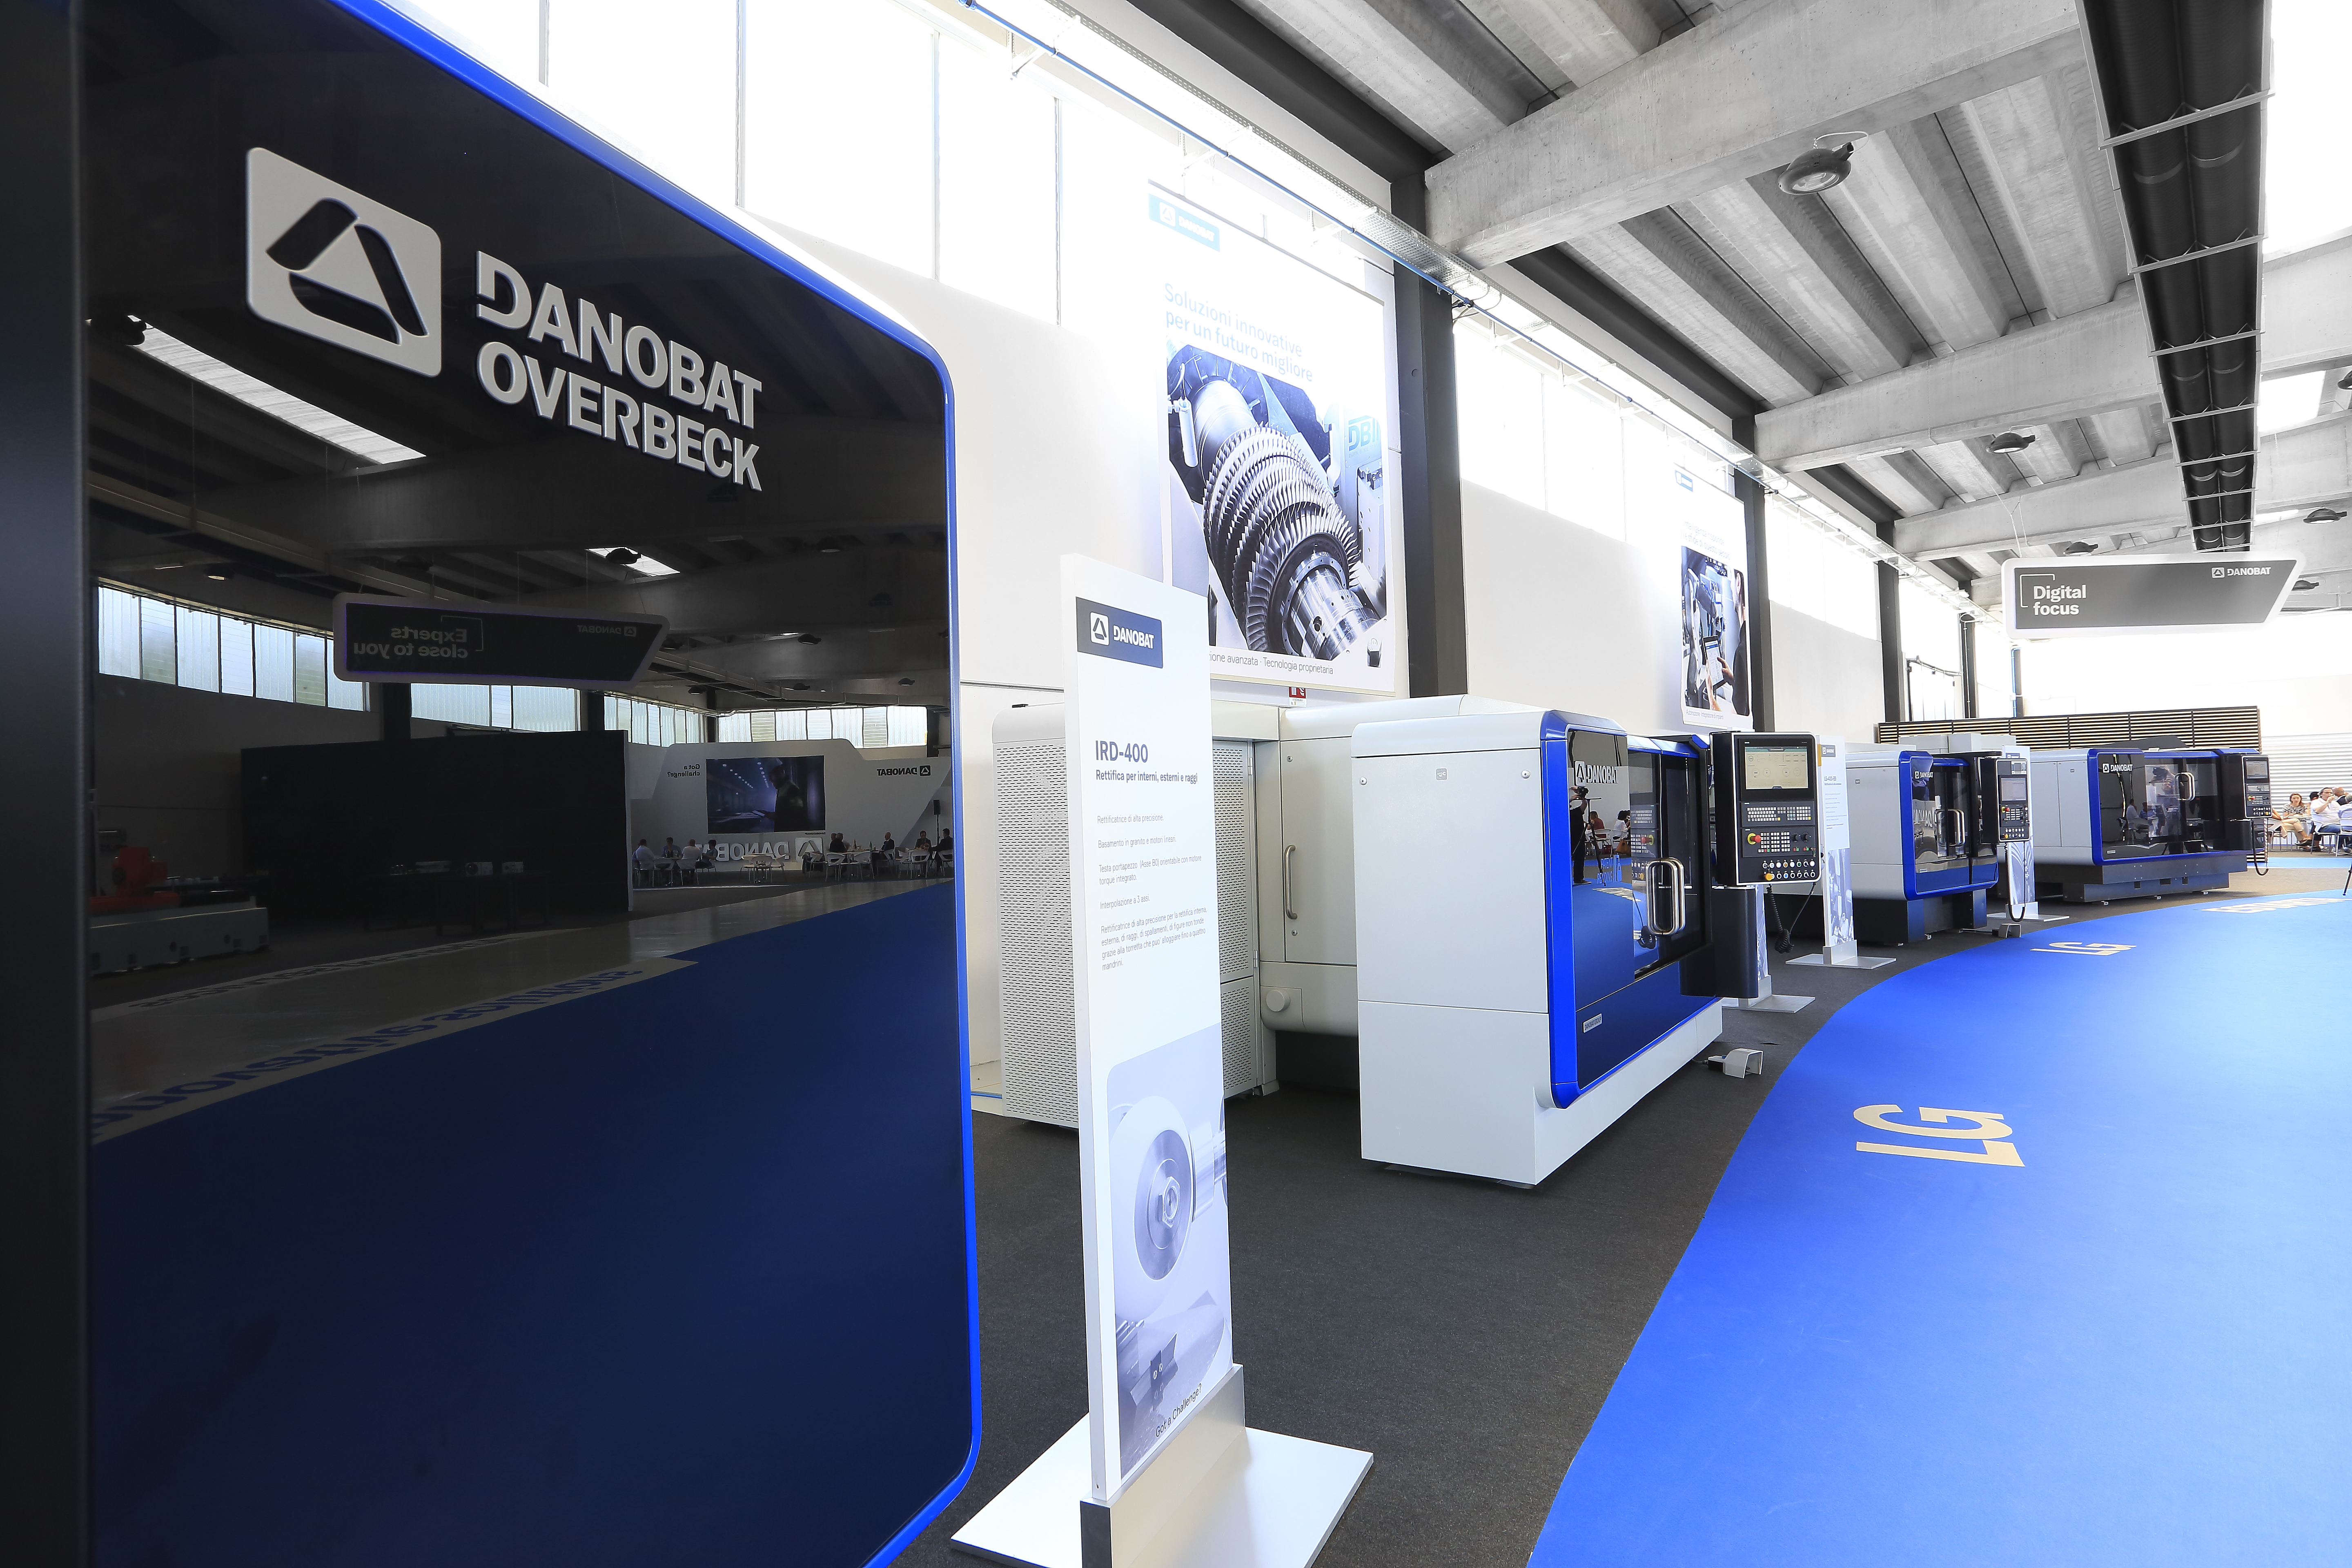 DANOBAT organises an Open House at its german facilities to present its range of high-precision grinding machines